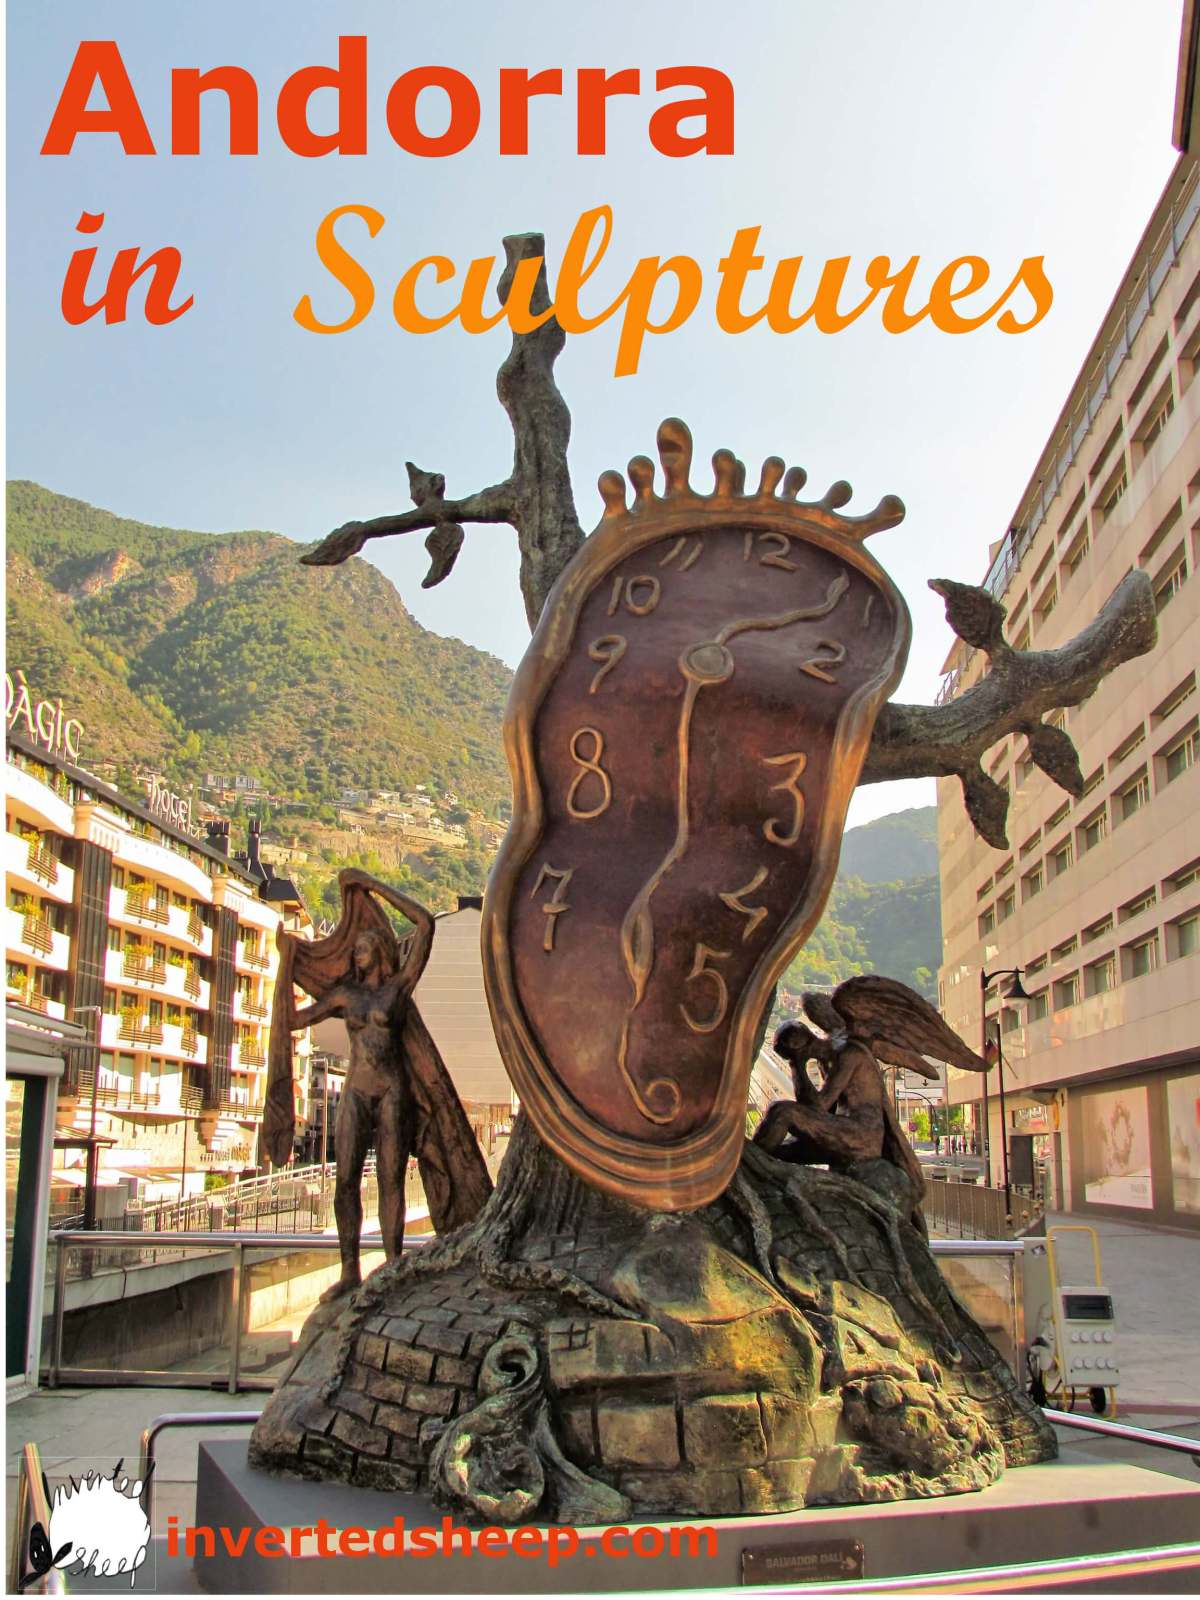 Andorra in Sculptures